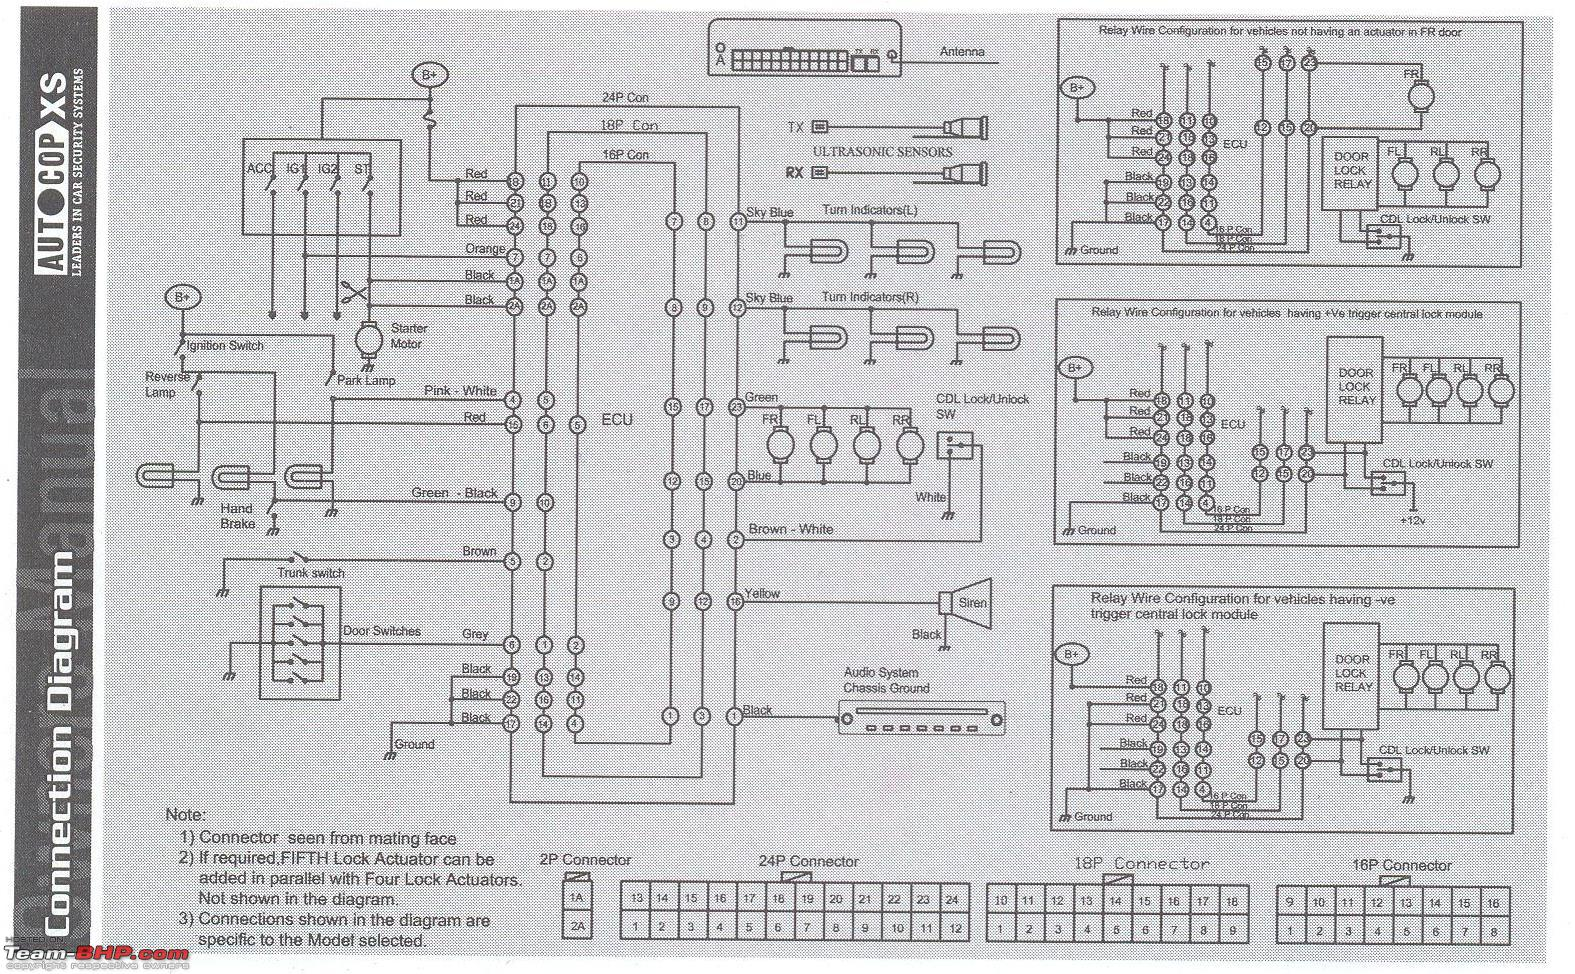 [DIAGRAM] 1984 Mercedes 300d Fuse Box Diagram FULL Version